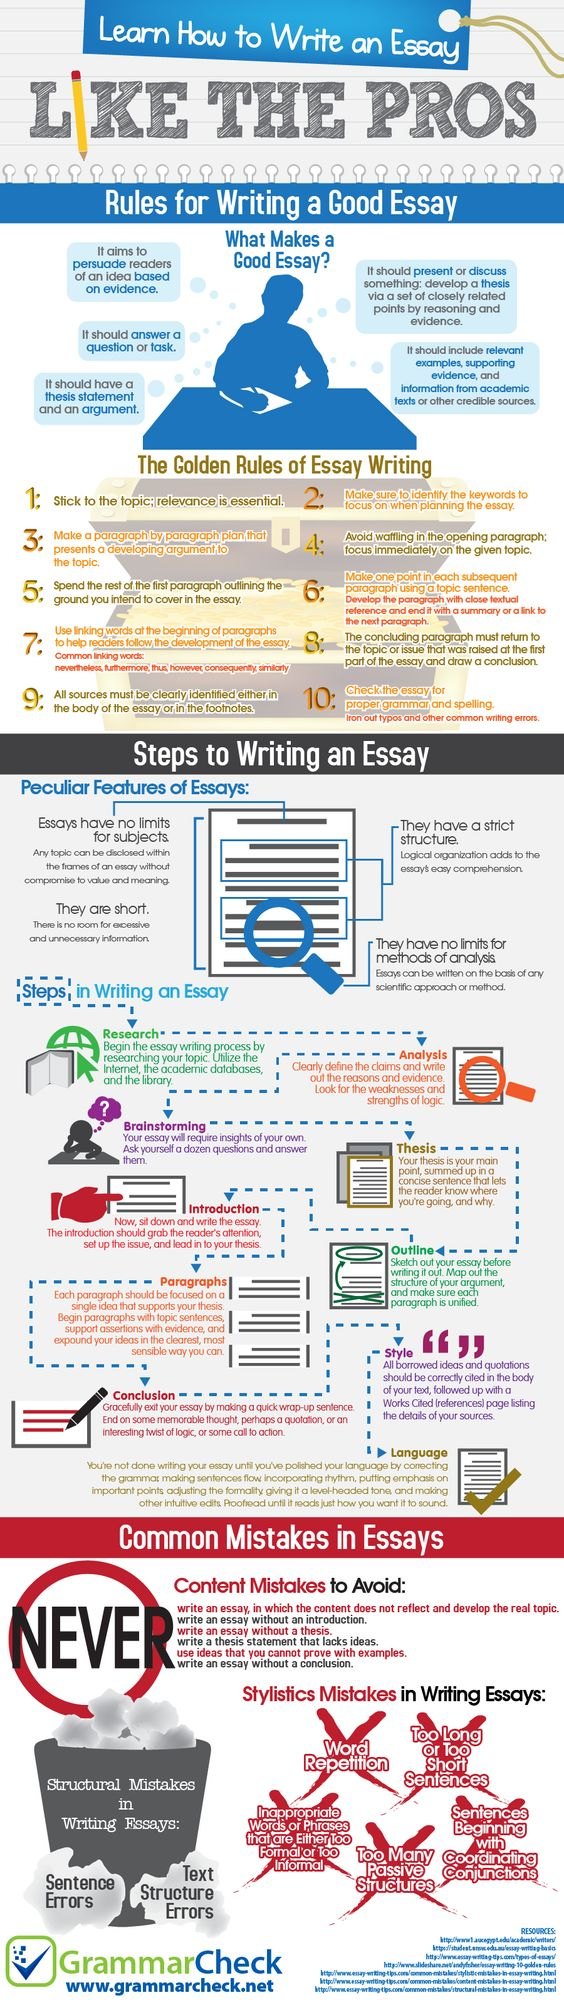 how to write an essay like the pros infographic study tips  how to write an essay like the pros infographic study tips infographic school and college